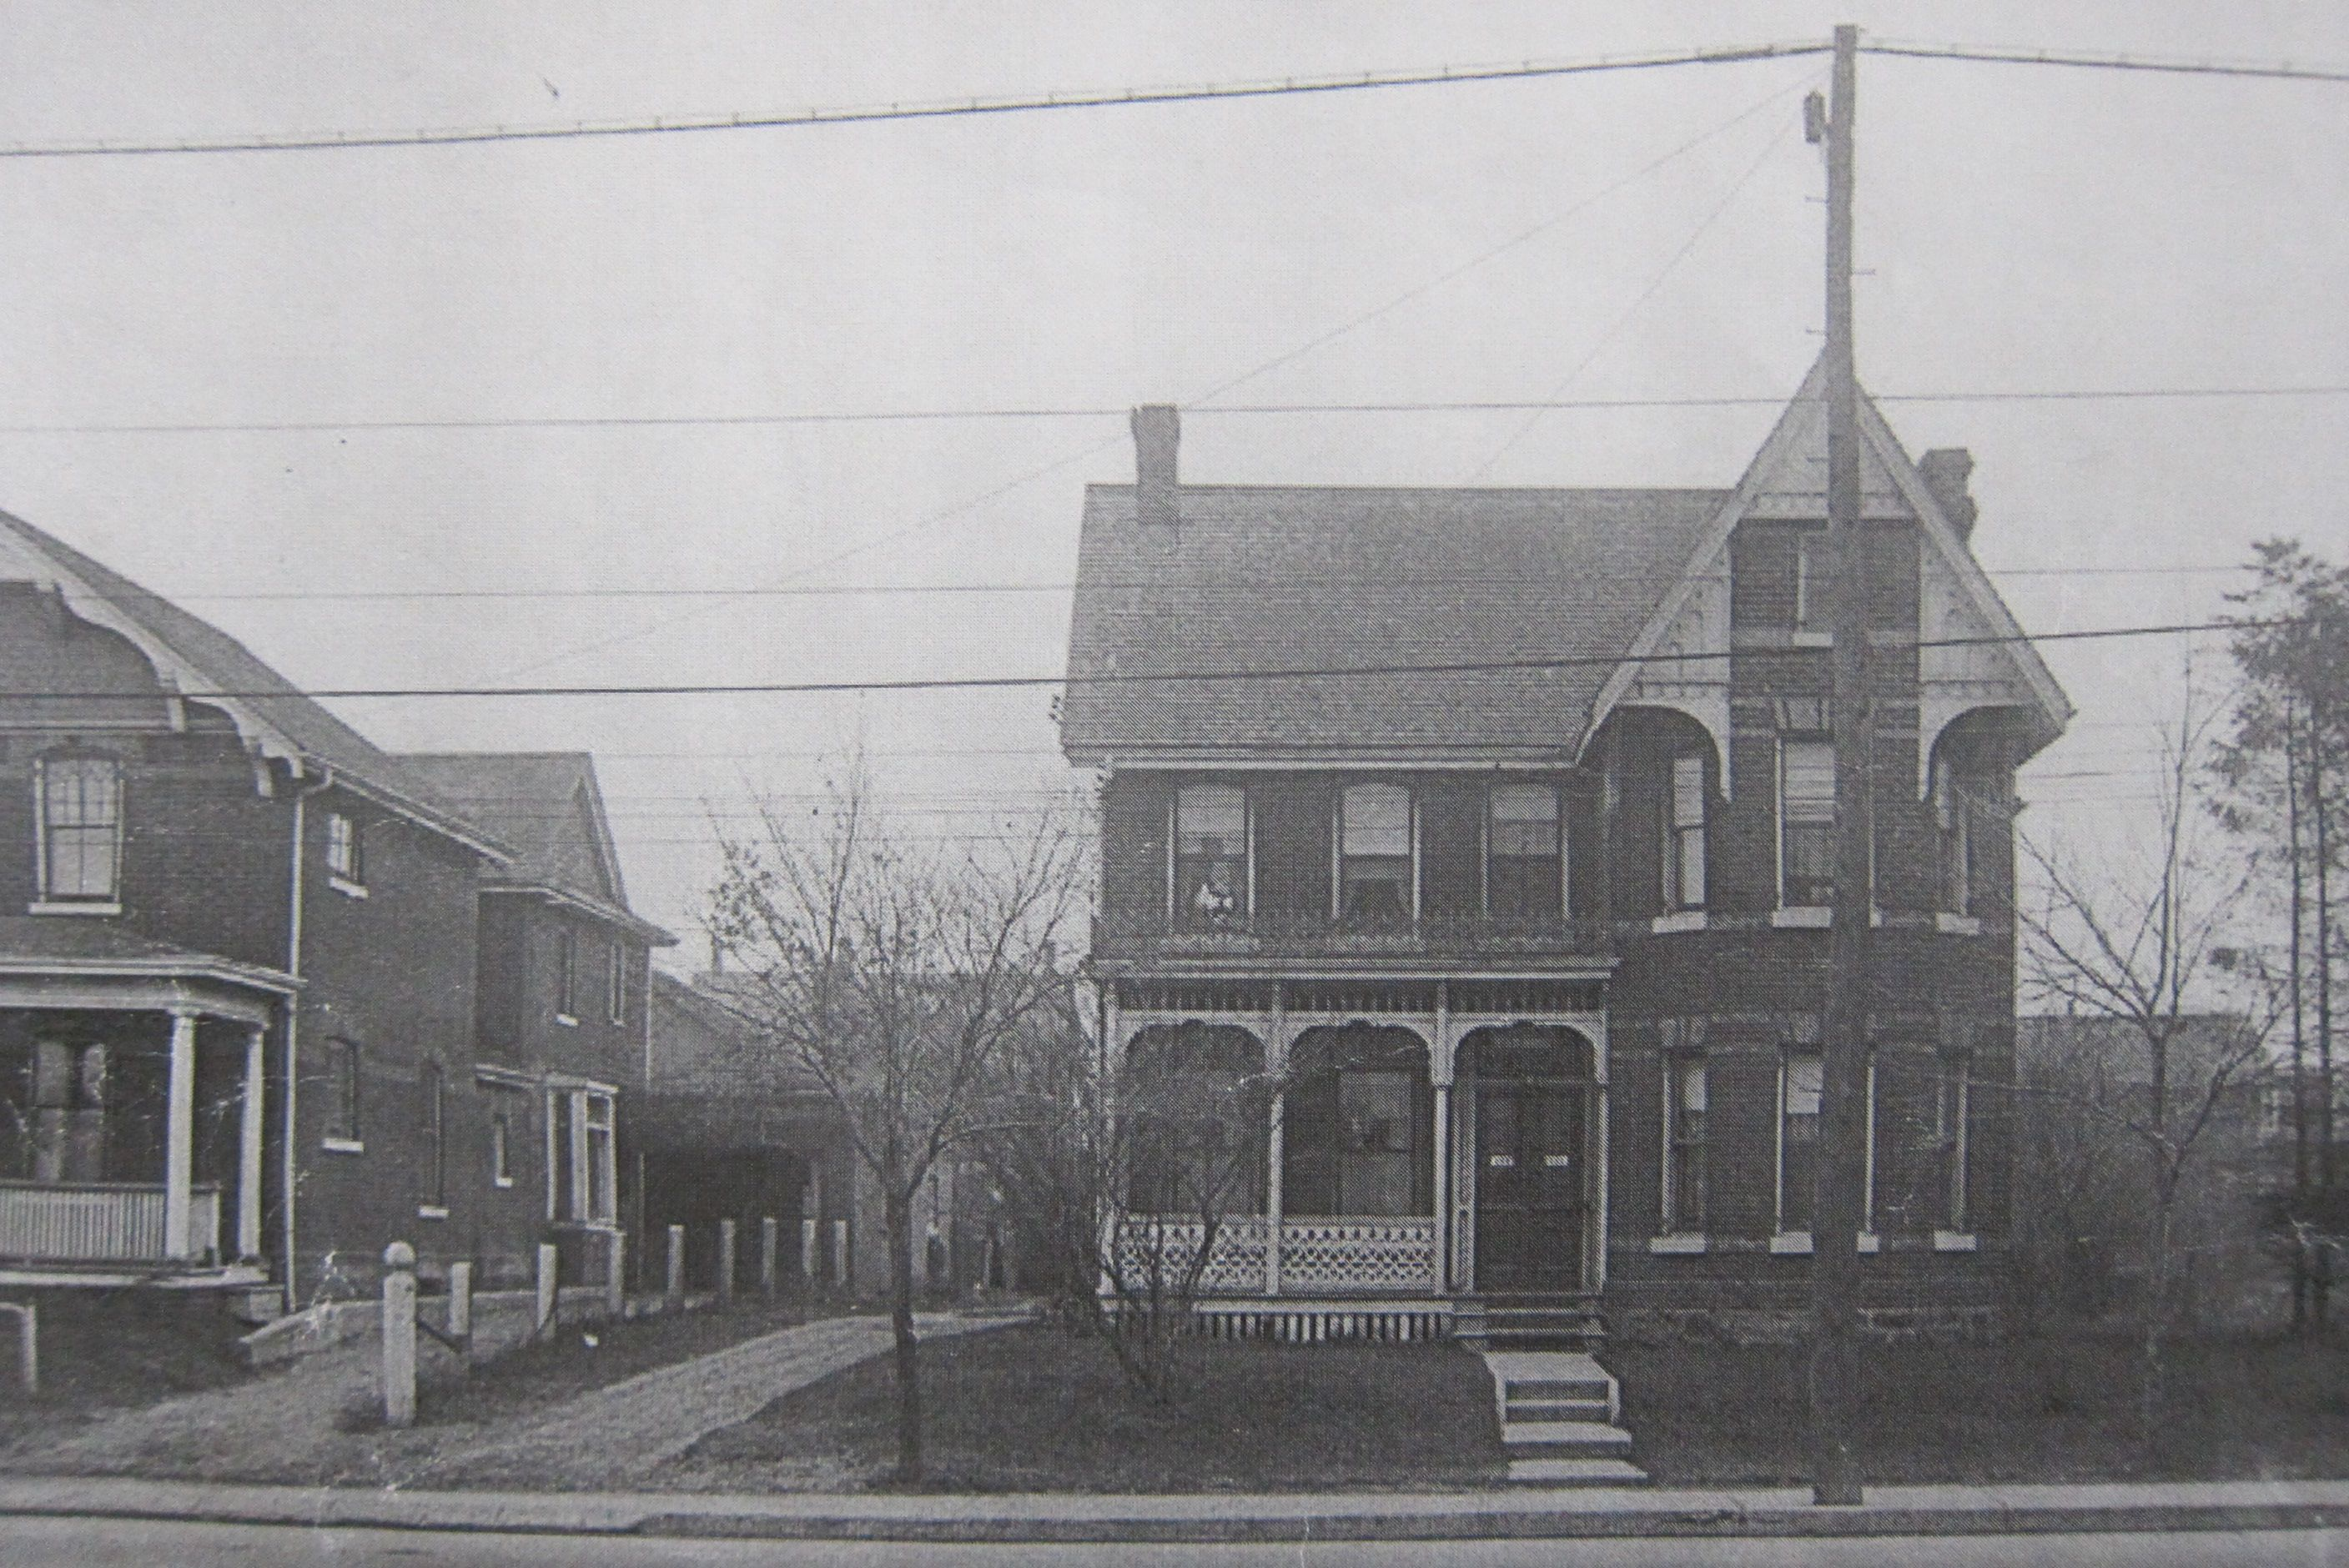 The western reaches of the connected towns of Coleman, Little York and East Toronto had houses like this one, which once sat on what is now the Sobey's parking lot. The towns grew up around the Grand Trunk station and yards east of Main Street.